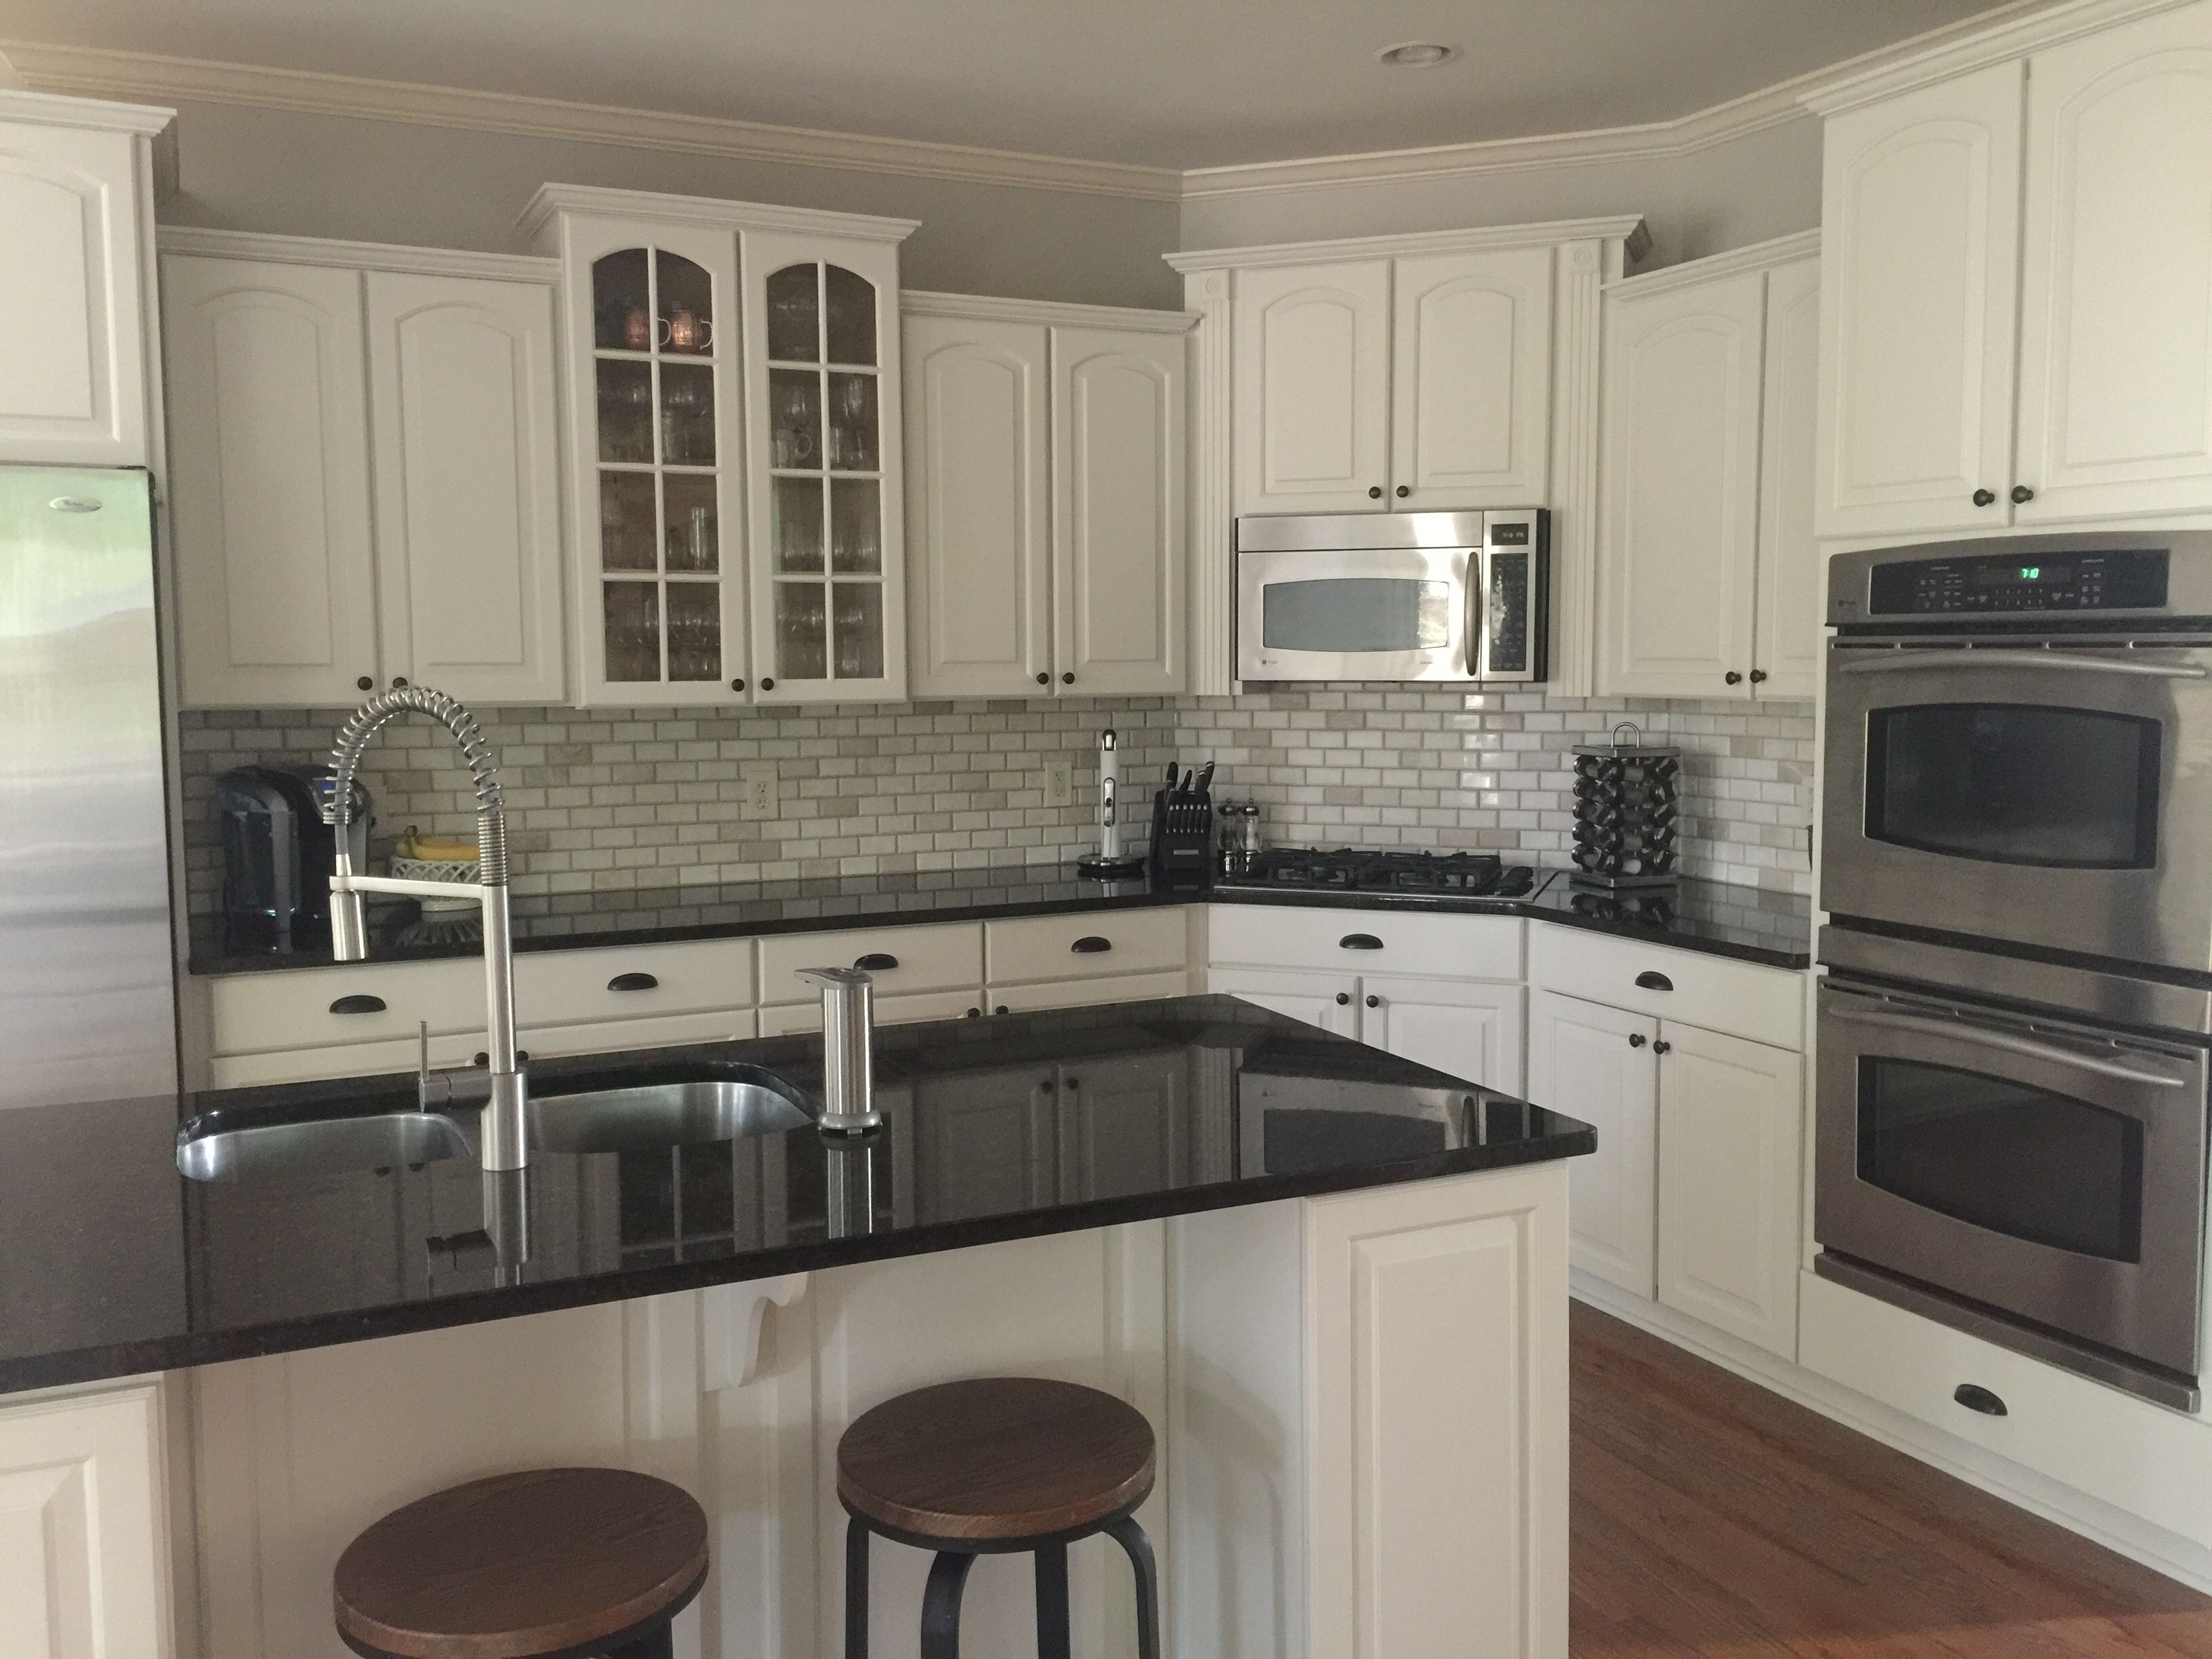 Light And Bright Kitchen White Cabinets Black Countertops Granite Countertops Kitchen White Cabinets With Granite